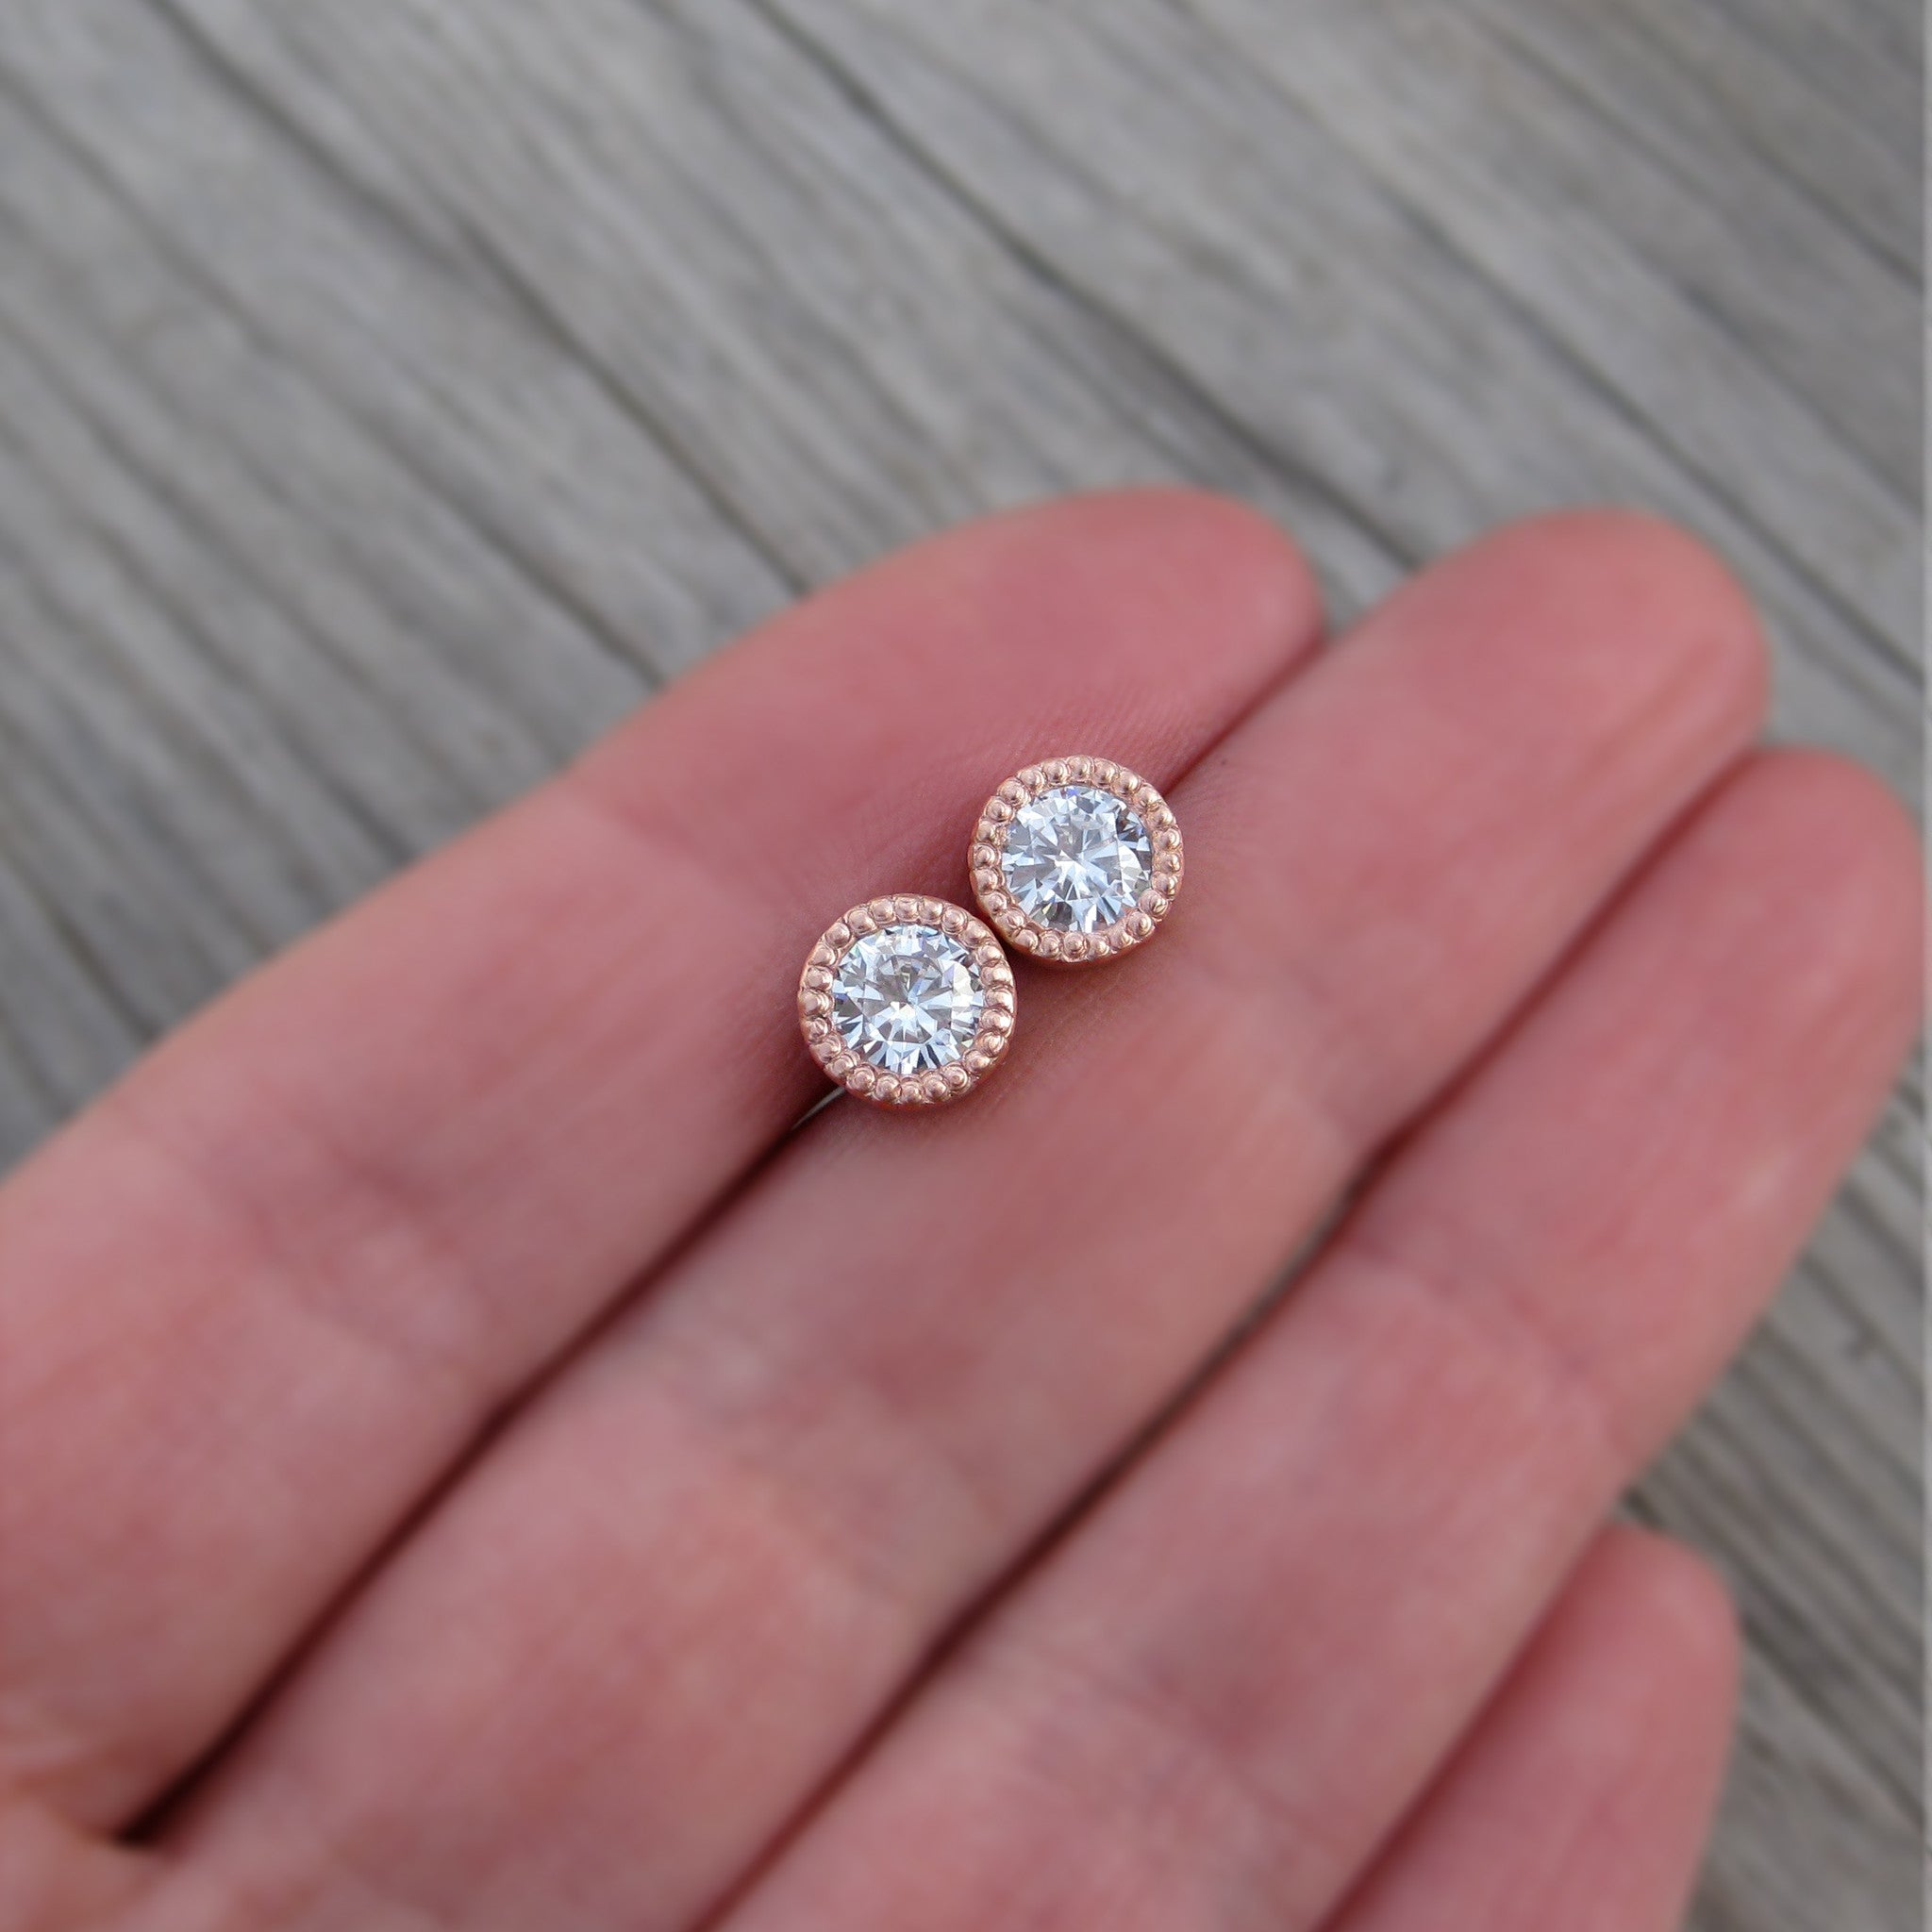 stud personal moissanite my com a listing shop pin etsy favorite from s earringsstud